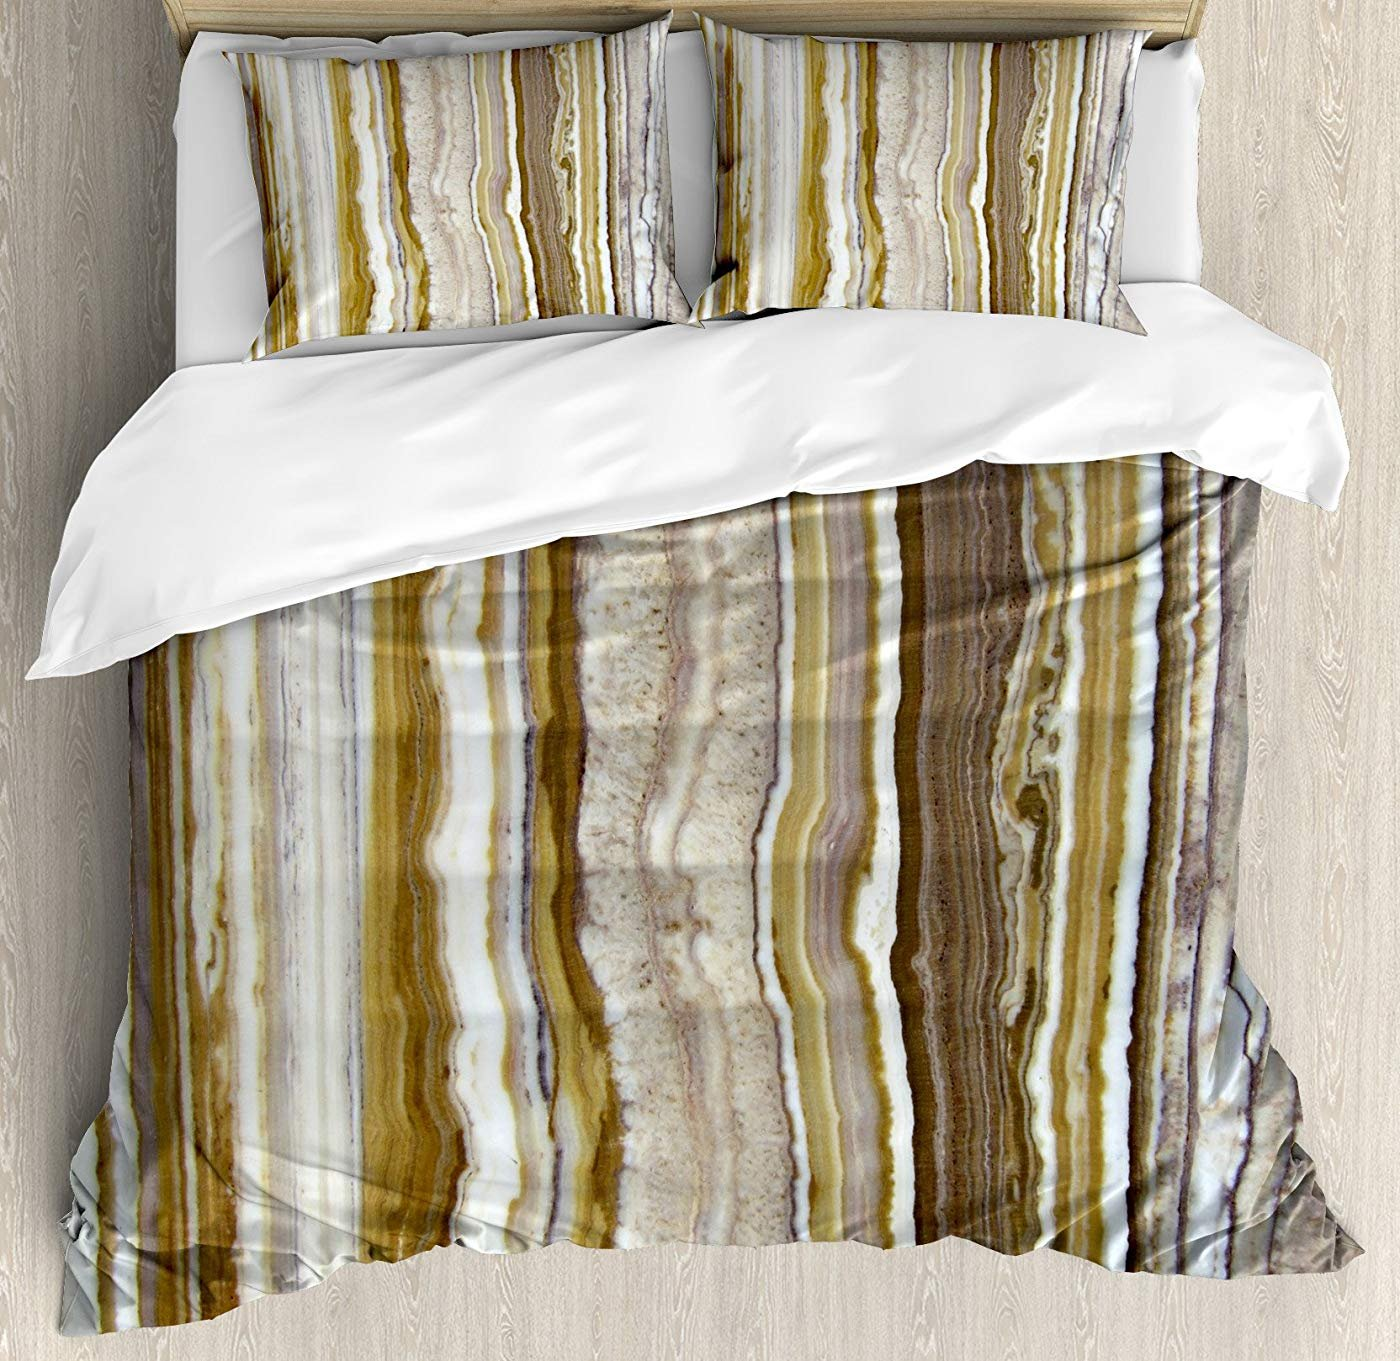 Multi 4 Twin Marble Duvet Cover Set Twin Size, Onyx Marble Rock Themed greenical Lines and bluerry Stripes in Earth color Print,Lightweight Microfiber Duvet Cover Sets, Mustard Brown